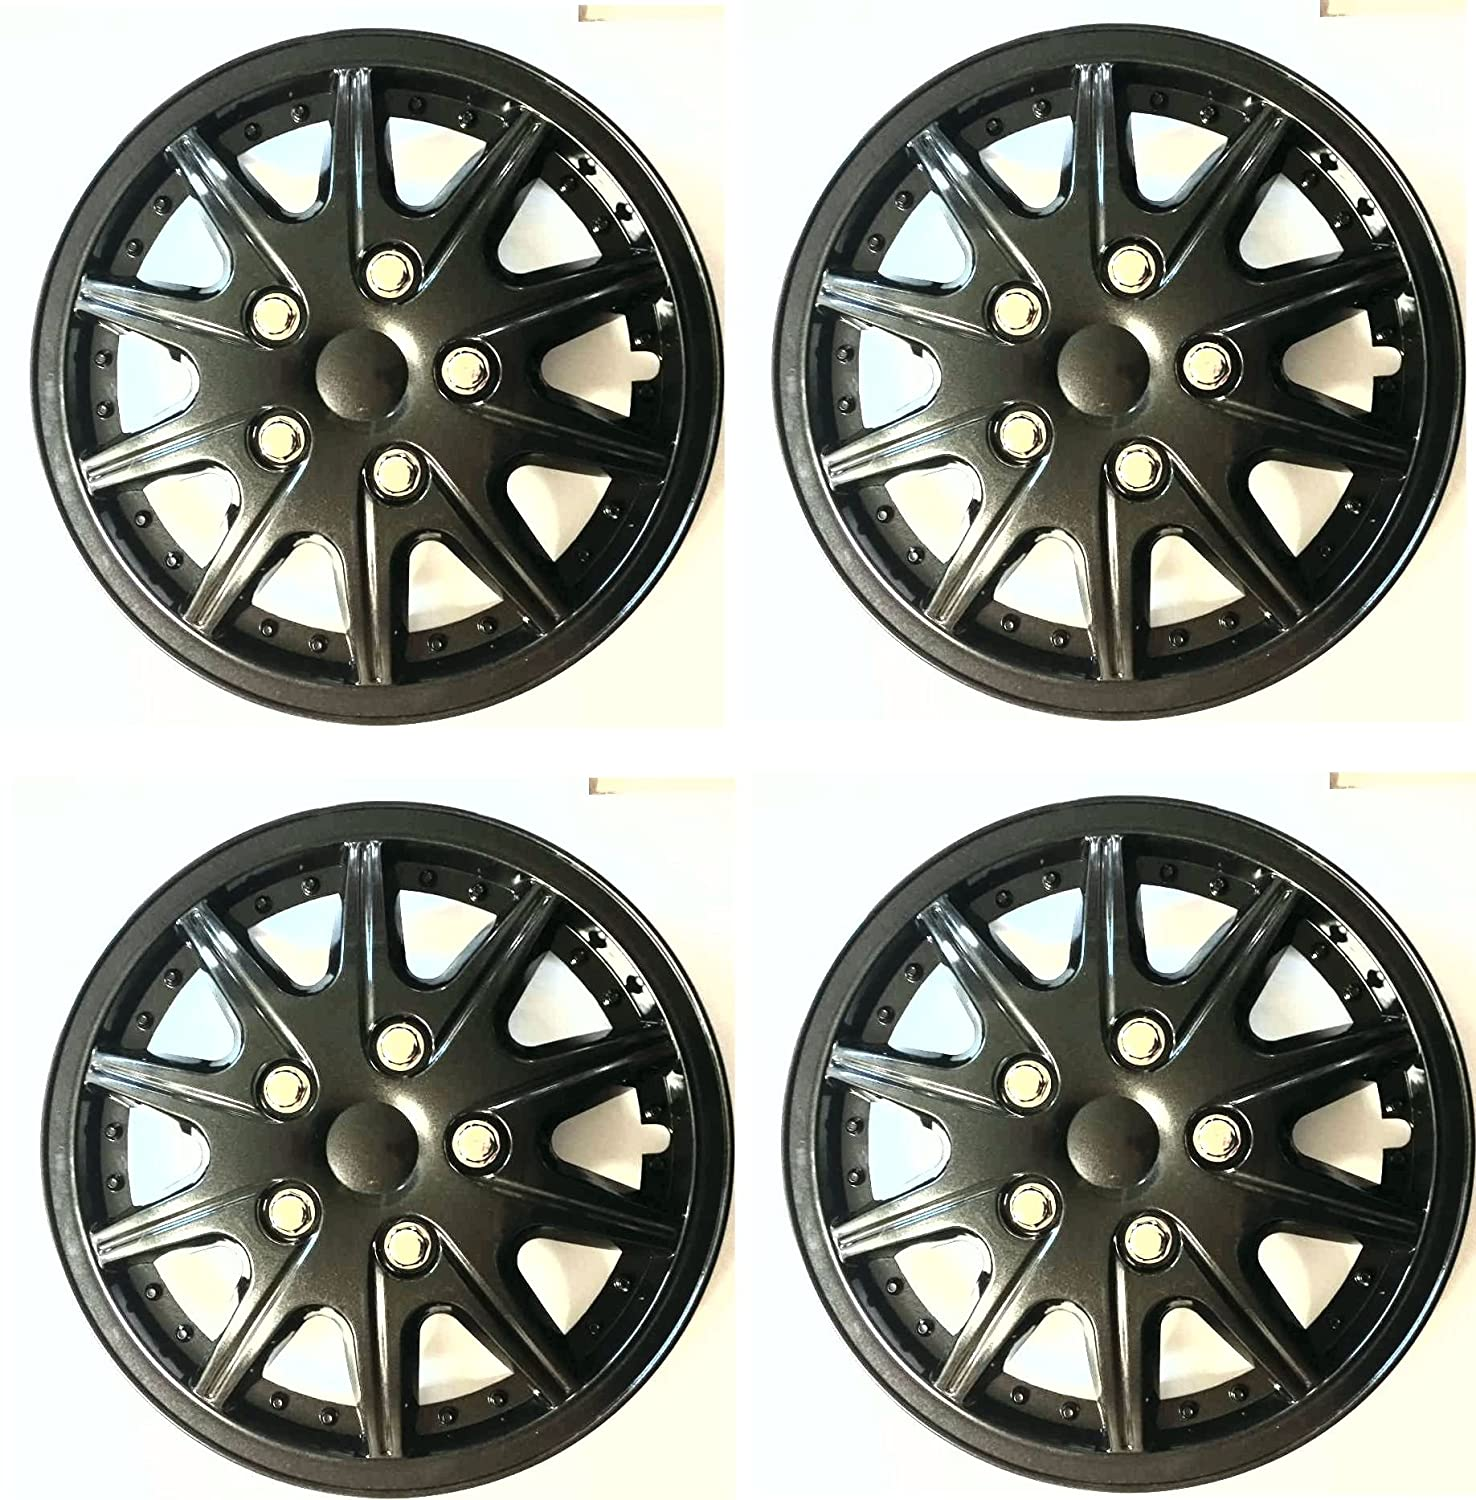 UKB4C Set of 4 Wheel Trims Hub Caps 15 Covers fits Renault Clio Megane Scenic